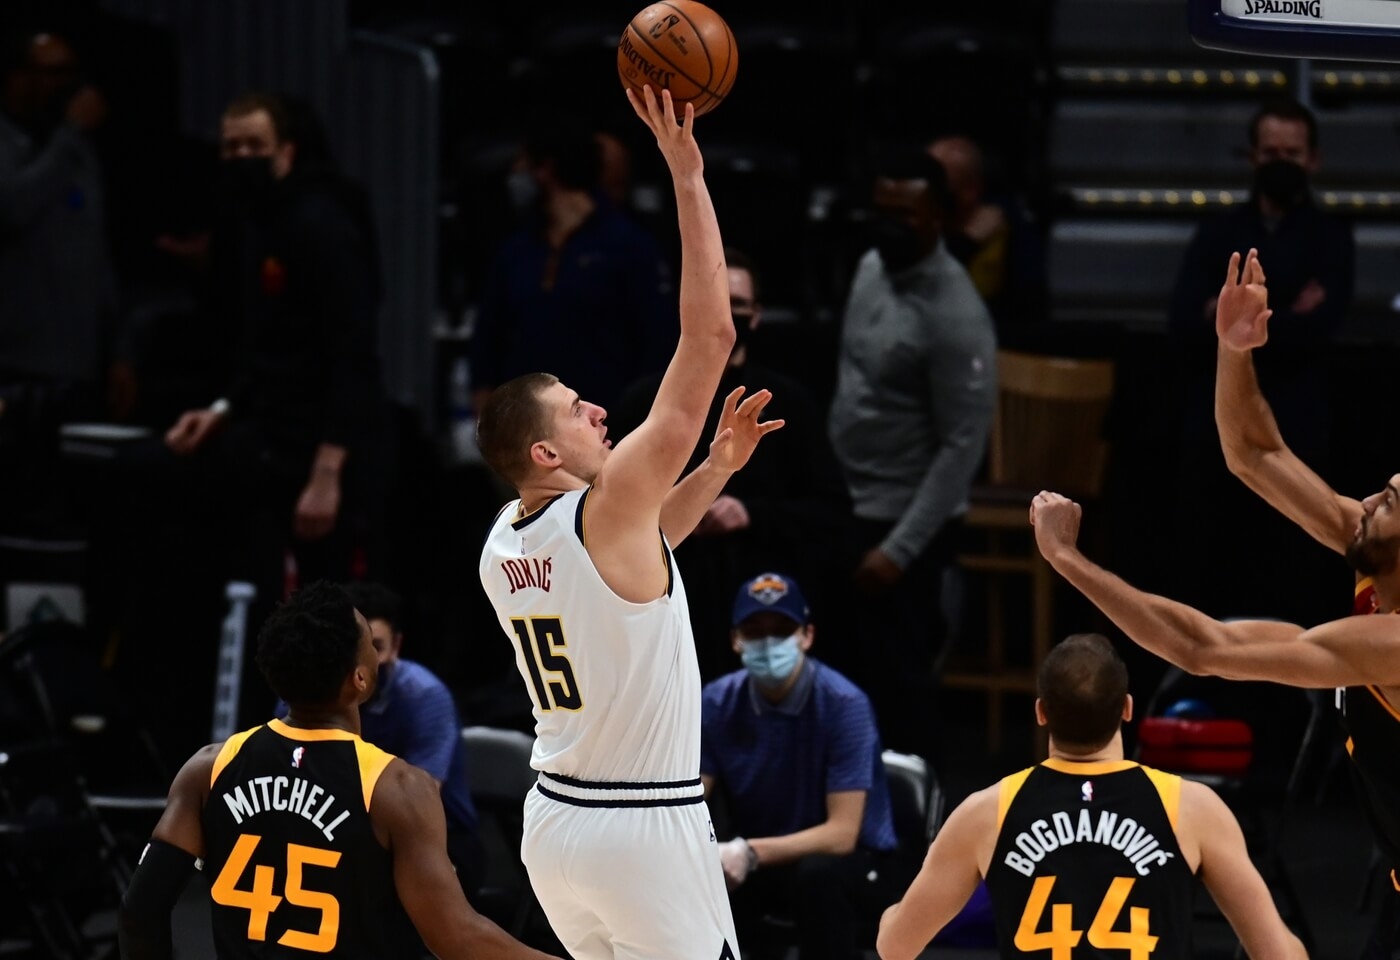 Jan 31, 2021; Denver, Colorado, USA; Denver Nuggets center Nikola Jokic (15) shoots the ball in the first quarter against the Utah Jazz at Ball Arena. Mandatory Credit: Ron Chenoy-USA TODAY Sports